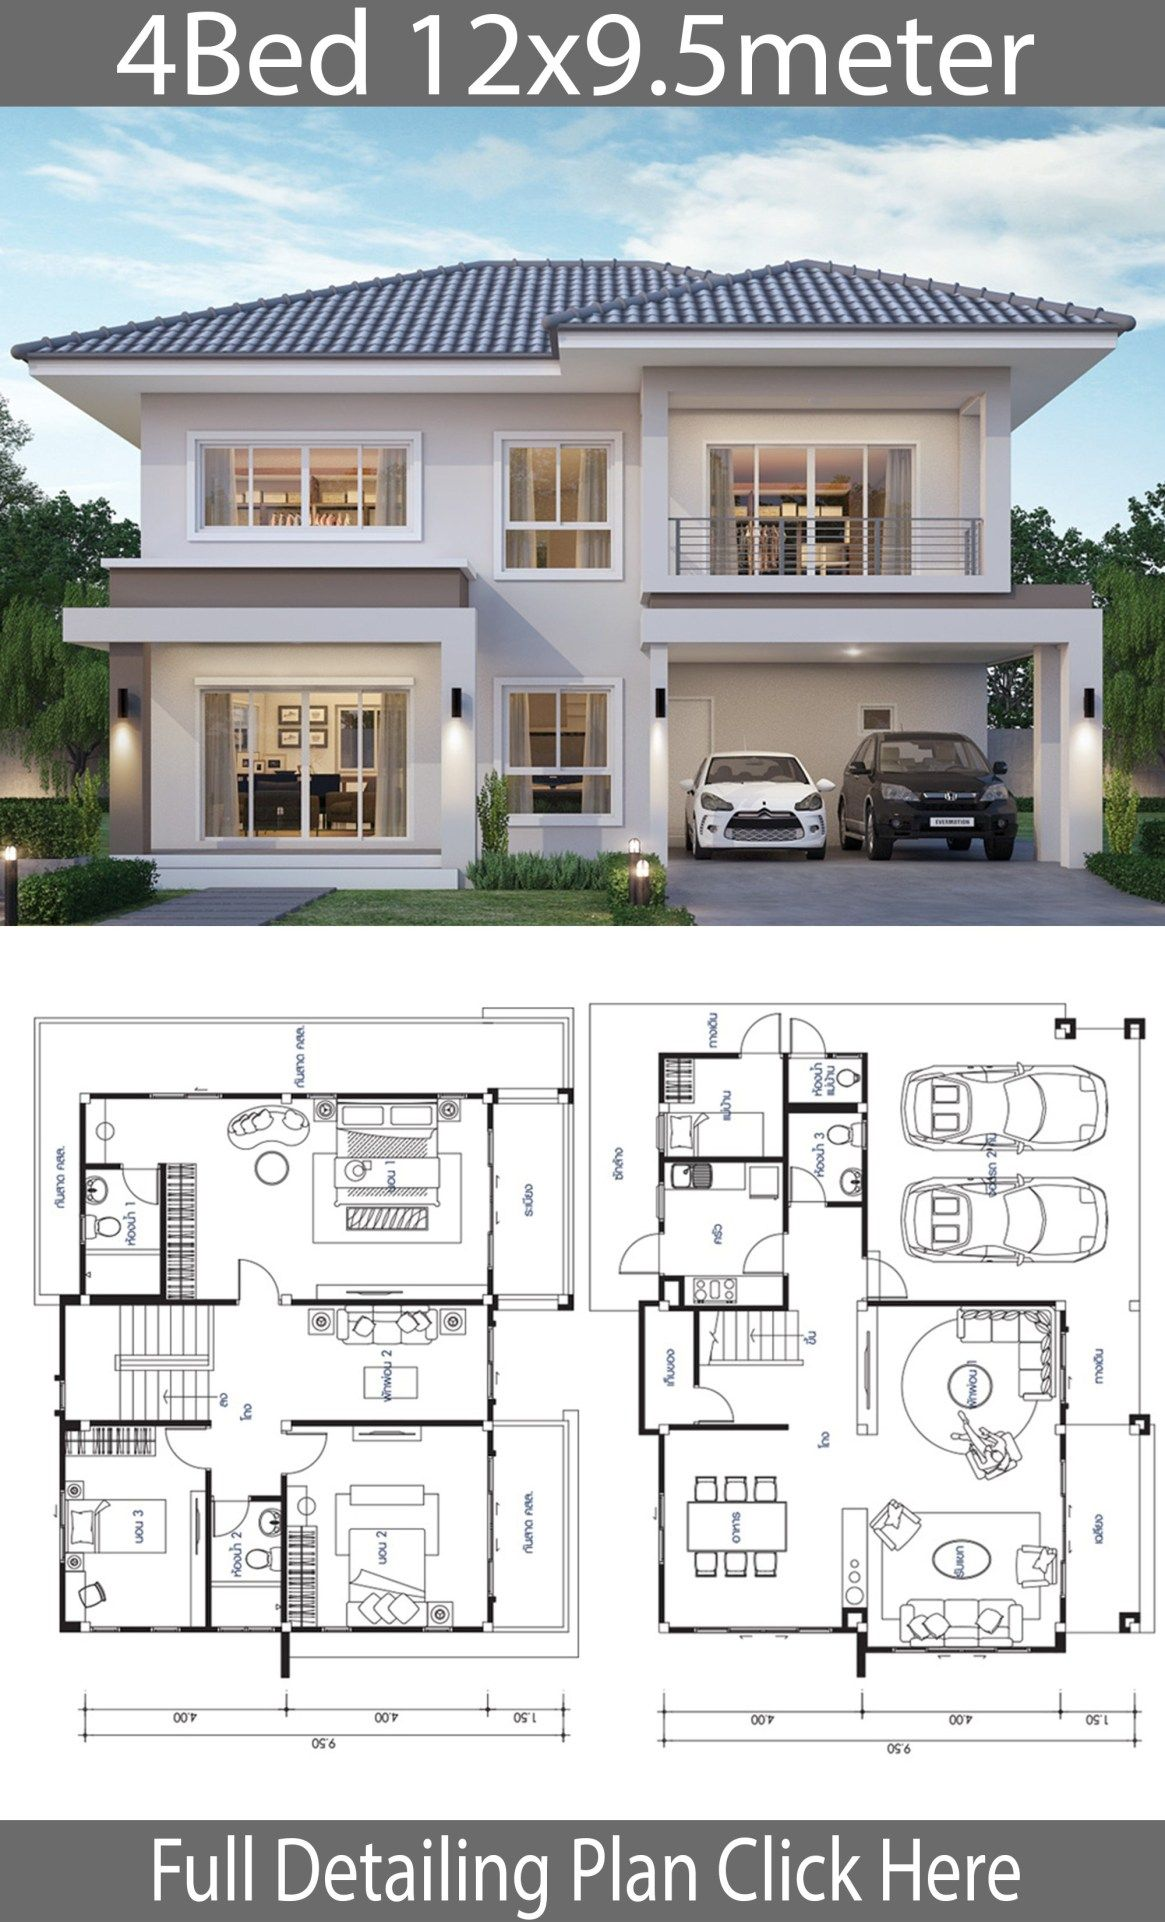 House Design Plan 12x9 5m With 4 Bedrooms Home Design With Plansearch 2 Storey House Design 4 Bedroom House Designs Sims House Plans